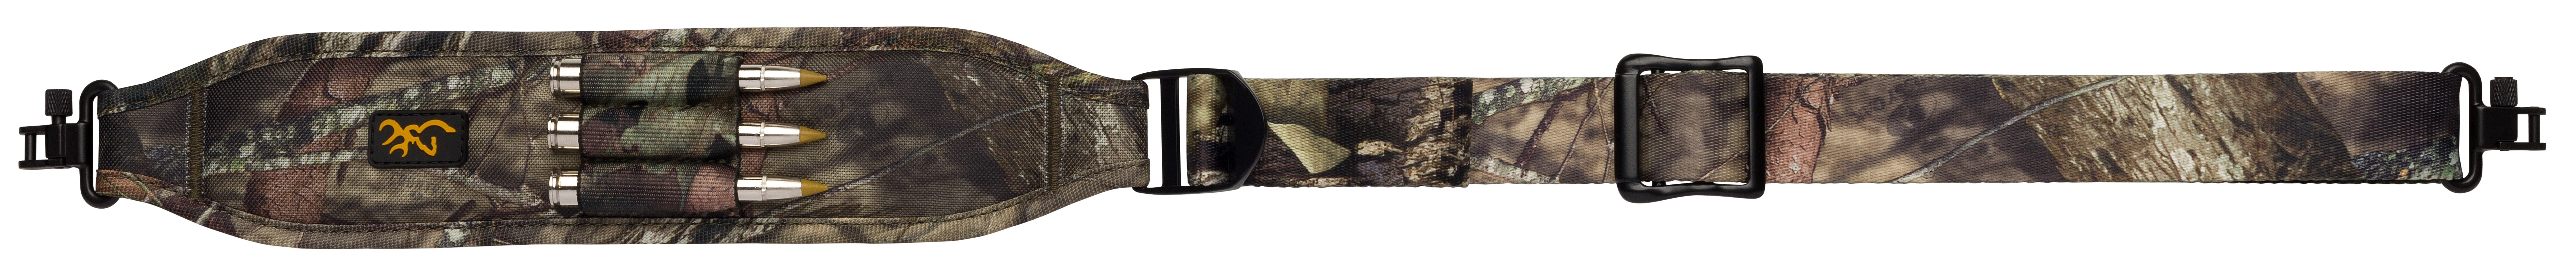 Browning All Season Sling - With Swivels - Mossy Oak Break-Up Country